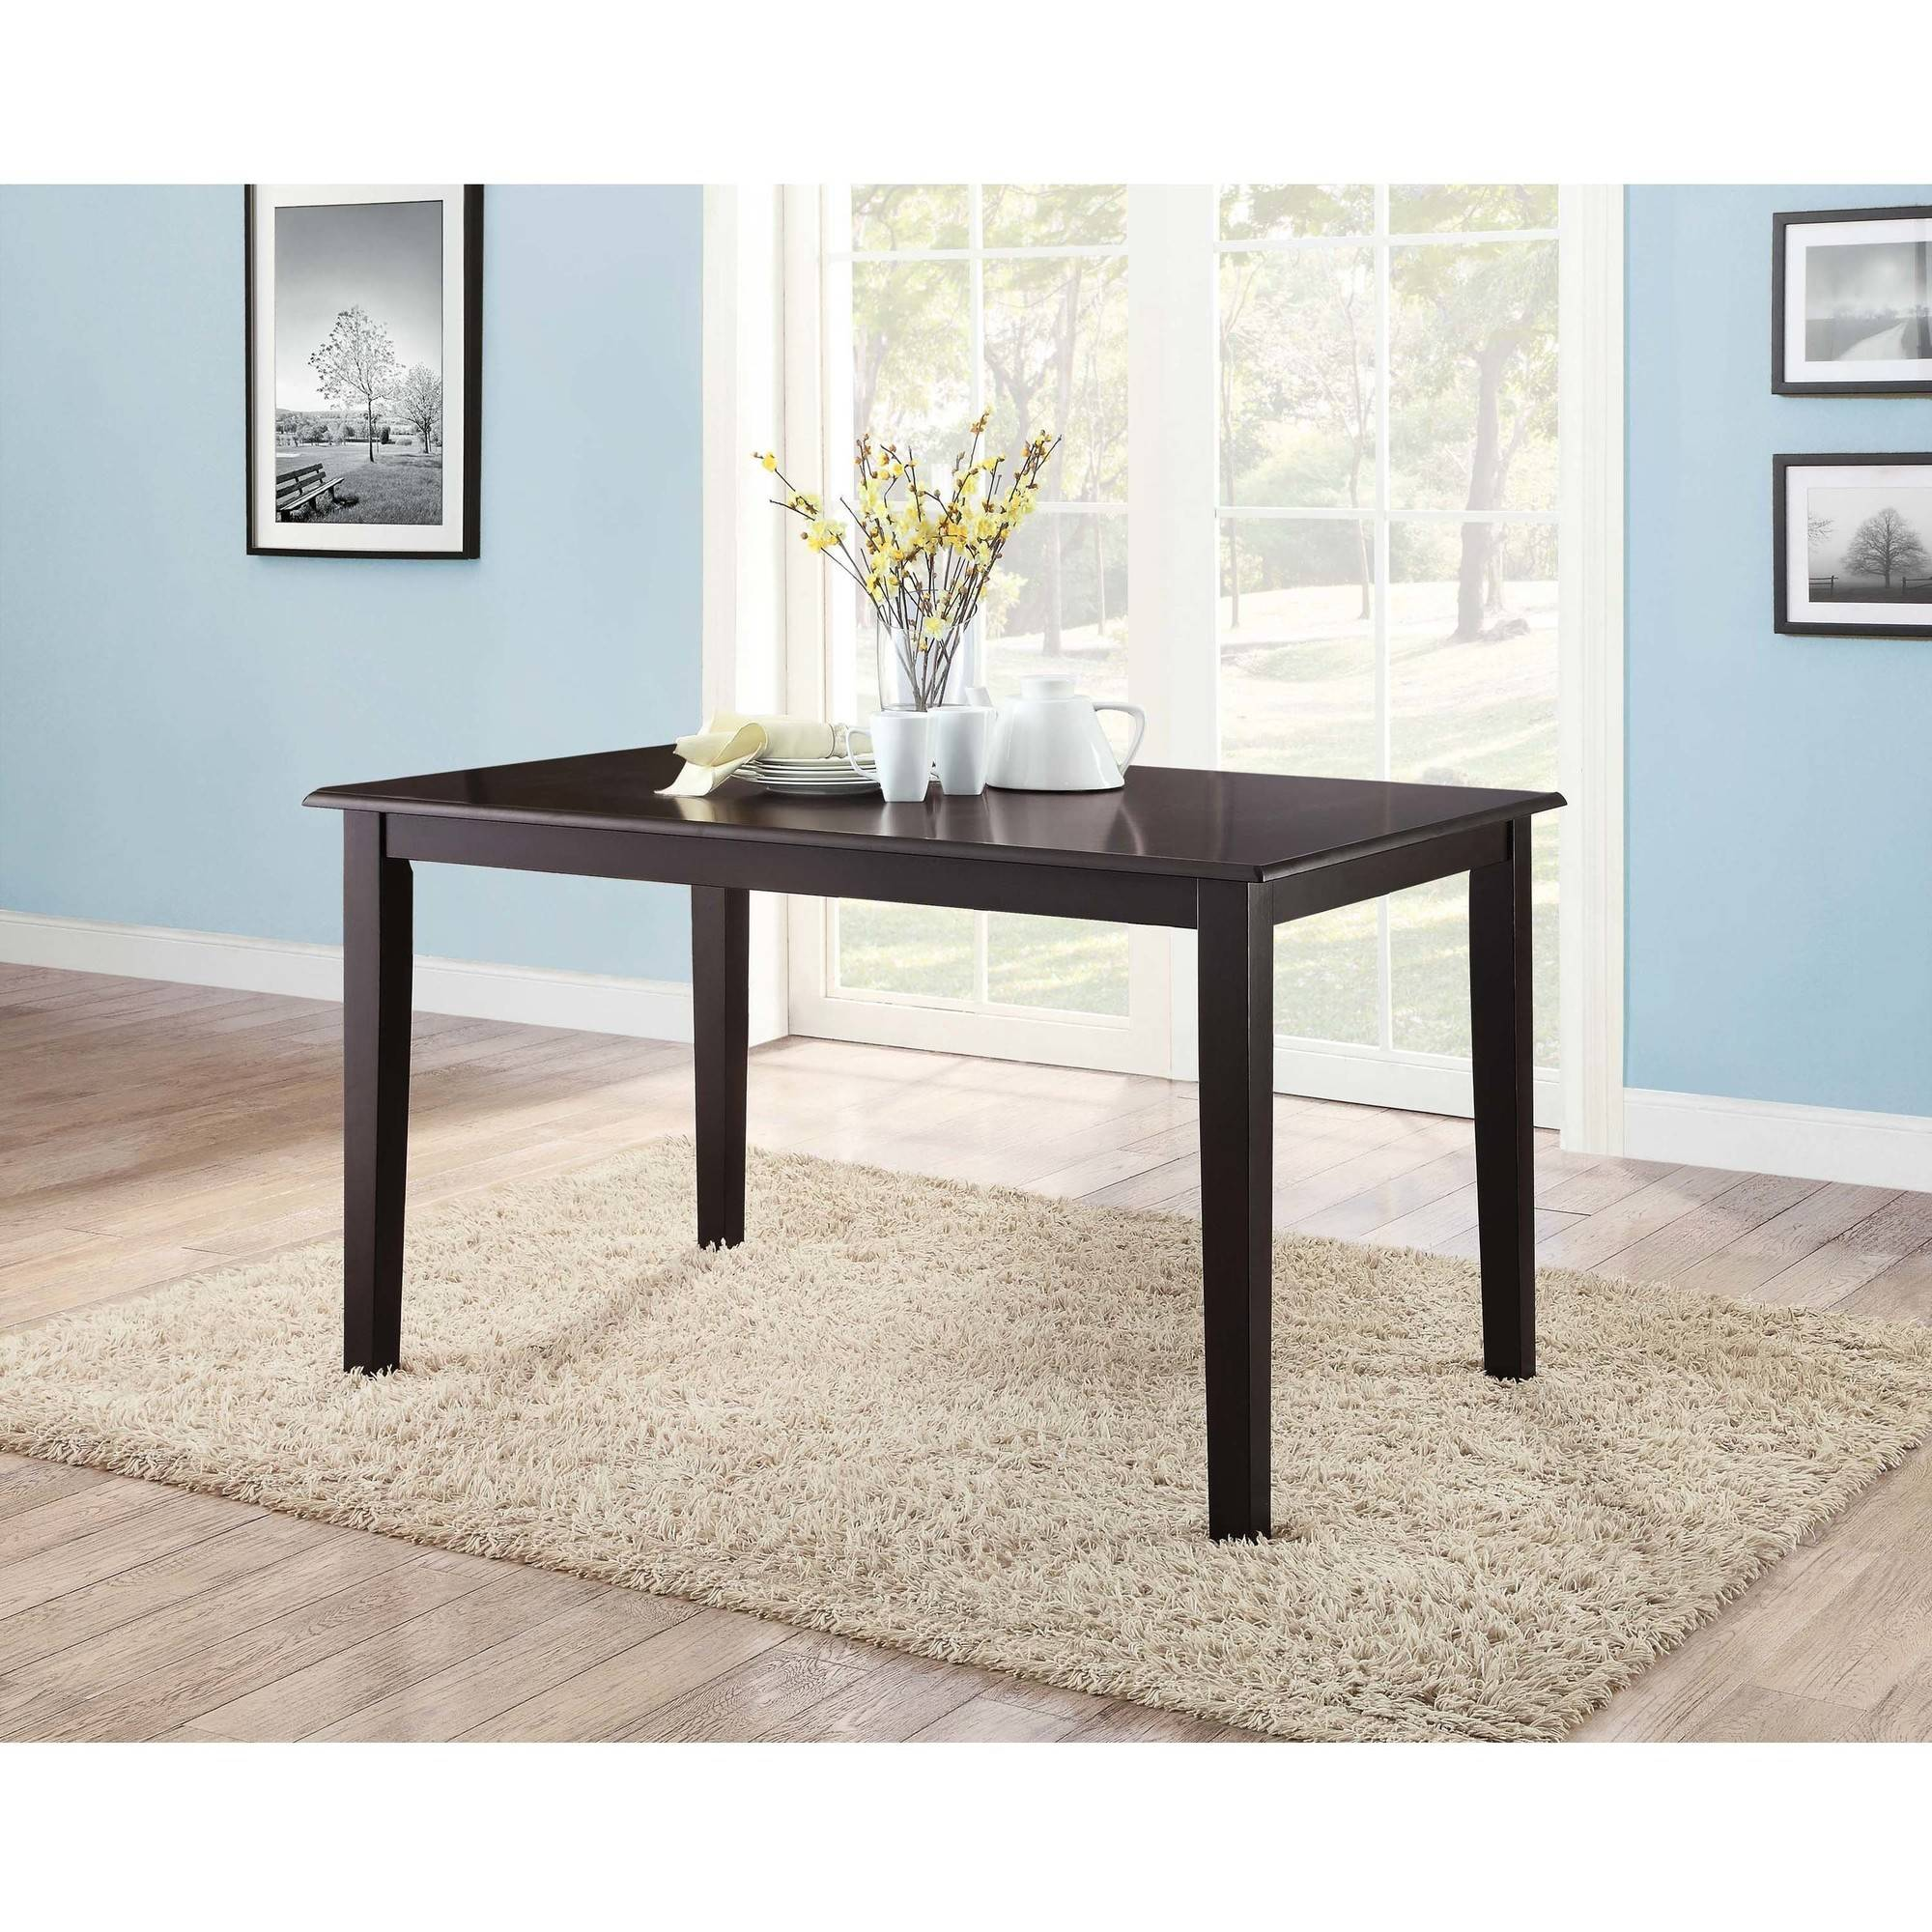 Expandable Dining Table expandable dining tables